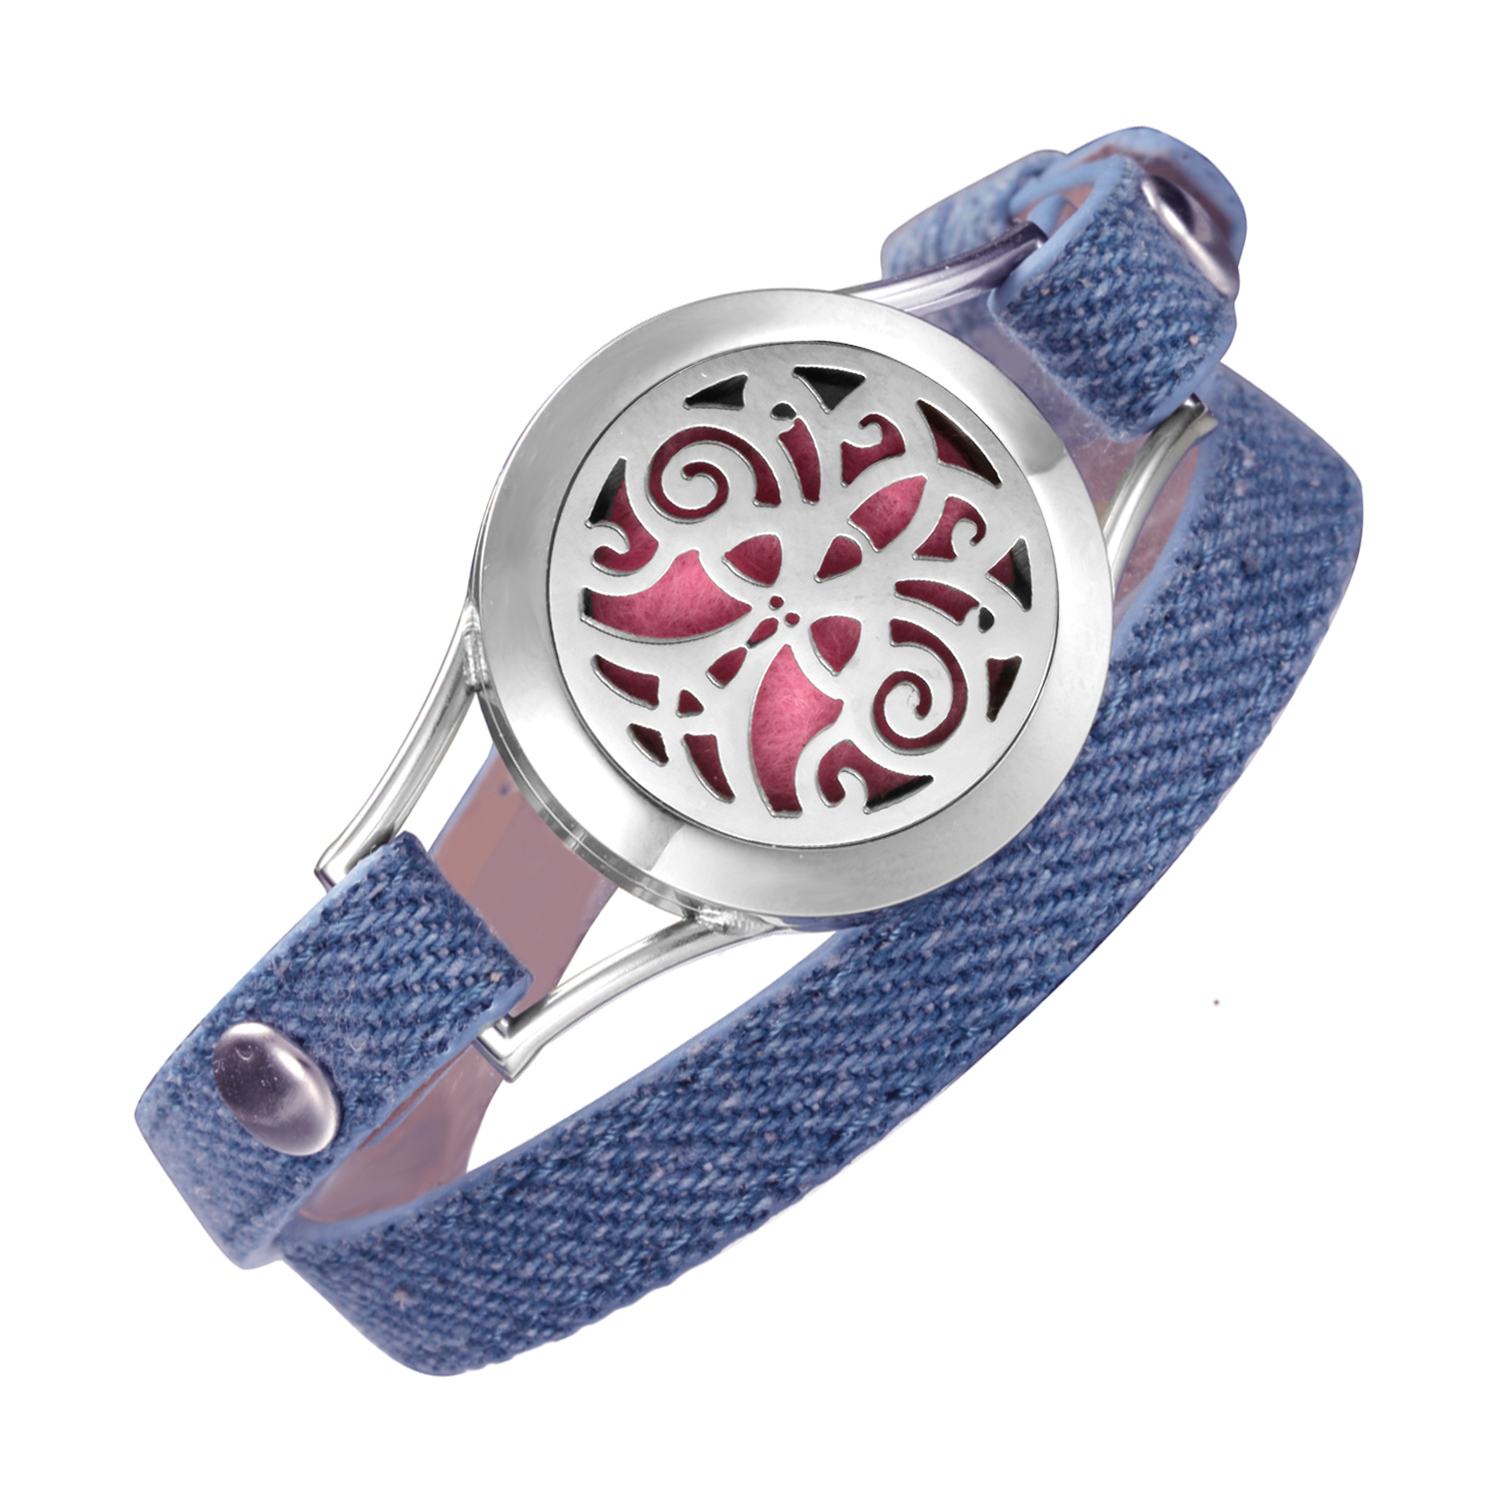 Denim wrap leather bracelets Valentine's Day For Girlfriend Gift Tree of Life aromatherapy oil Daughter diffuser Locket